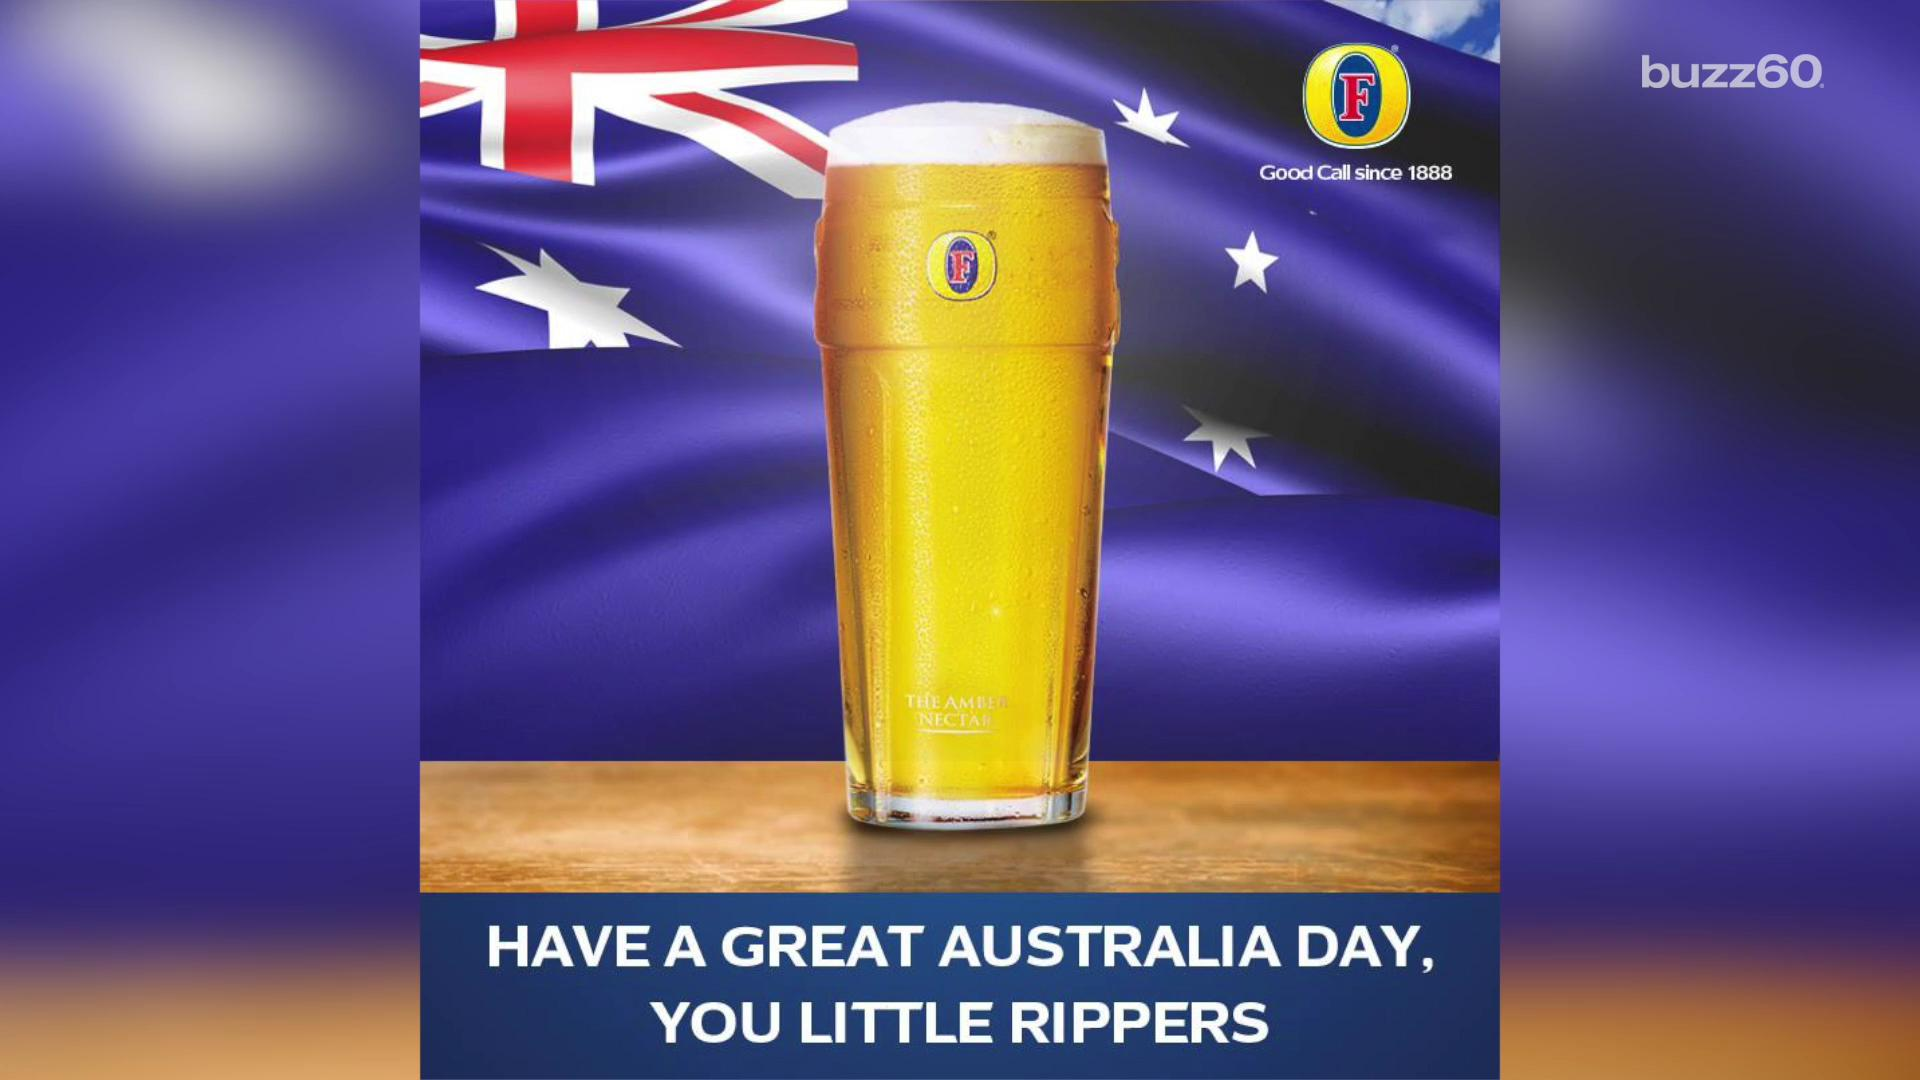 Guy sues beer company for not being 'Australian'